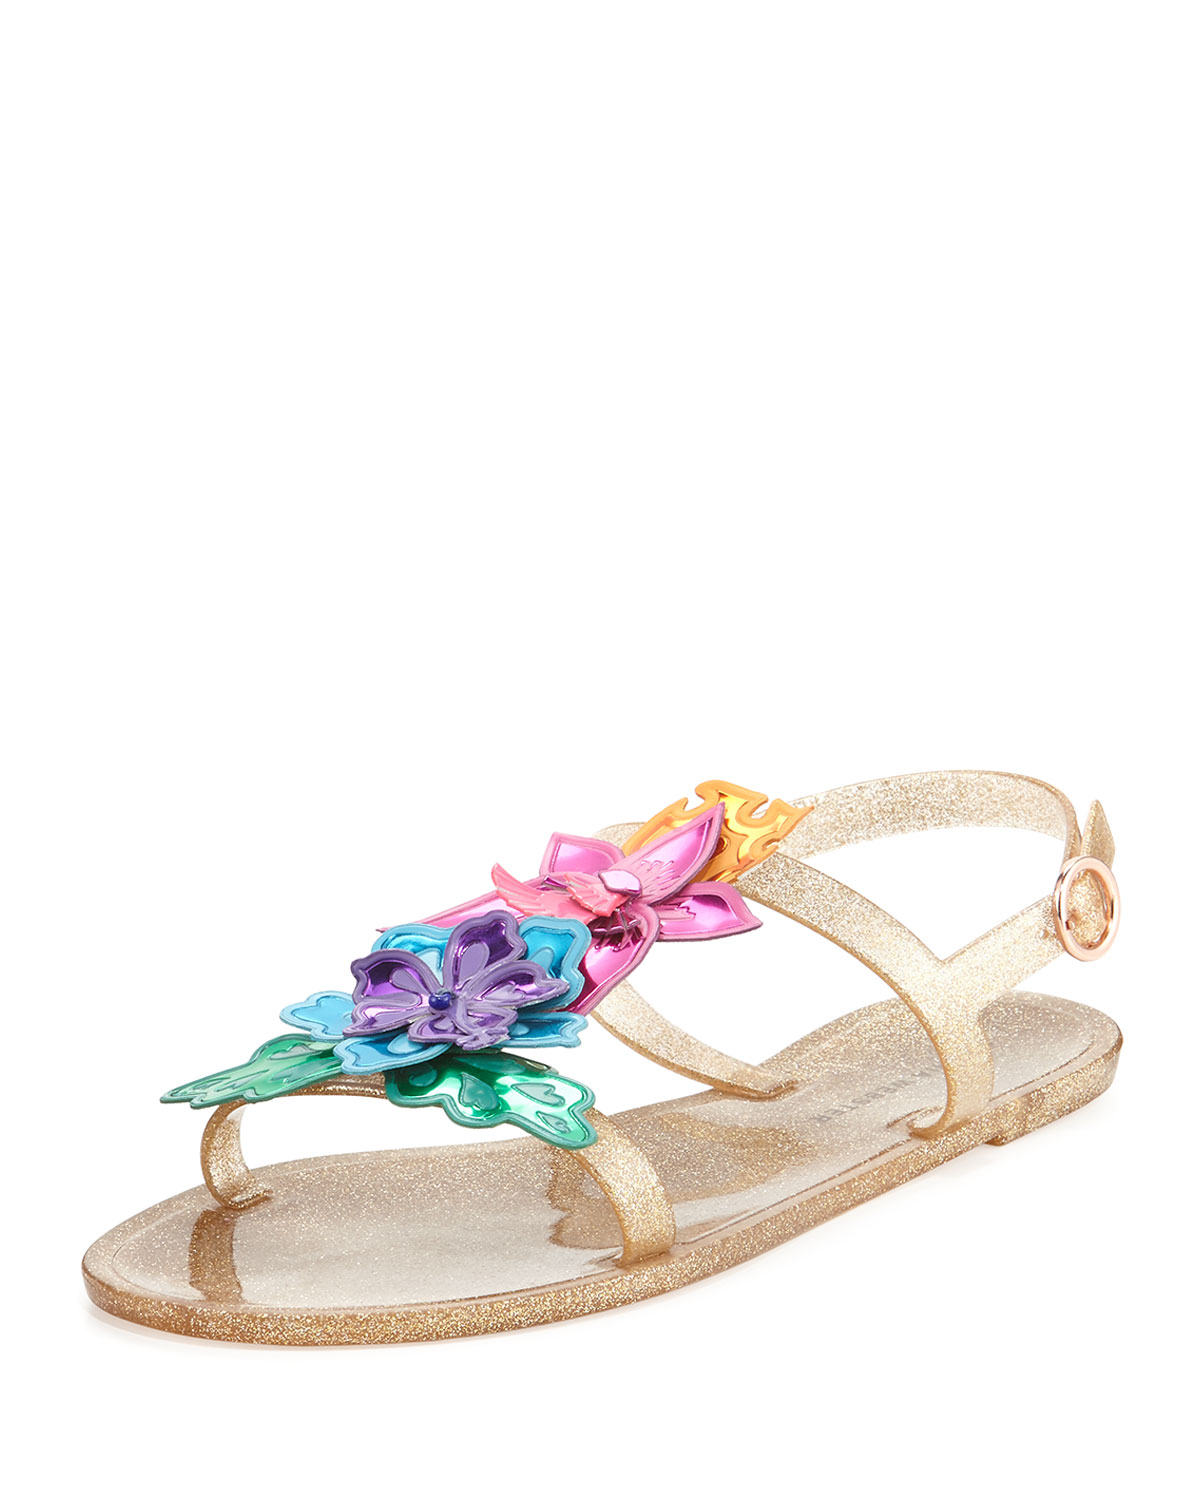 c33c558ac99 Sophia Webster Hula 3D Floral Jelly Flat Sandals